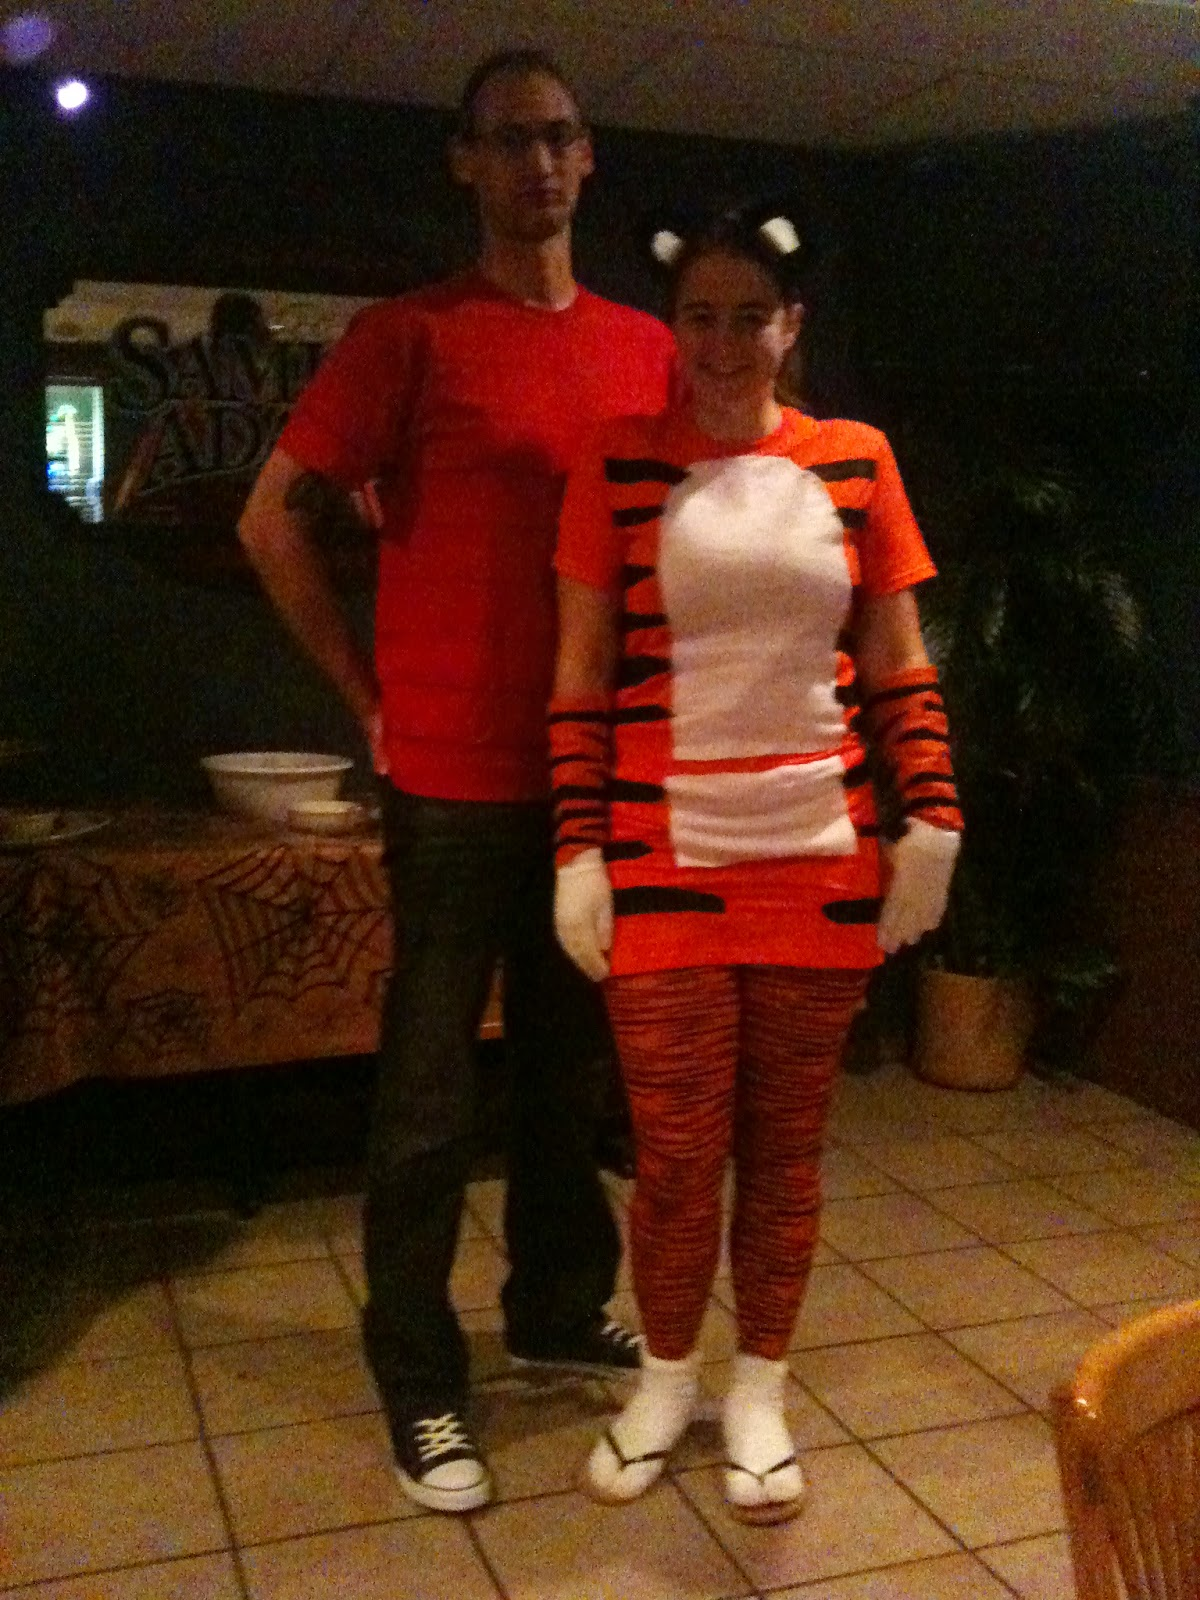 & The Crafty German: T-shirt Costume Tuesday #2 - Calvin and Hobbes